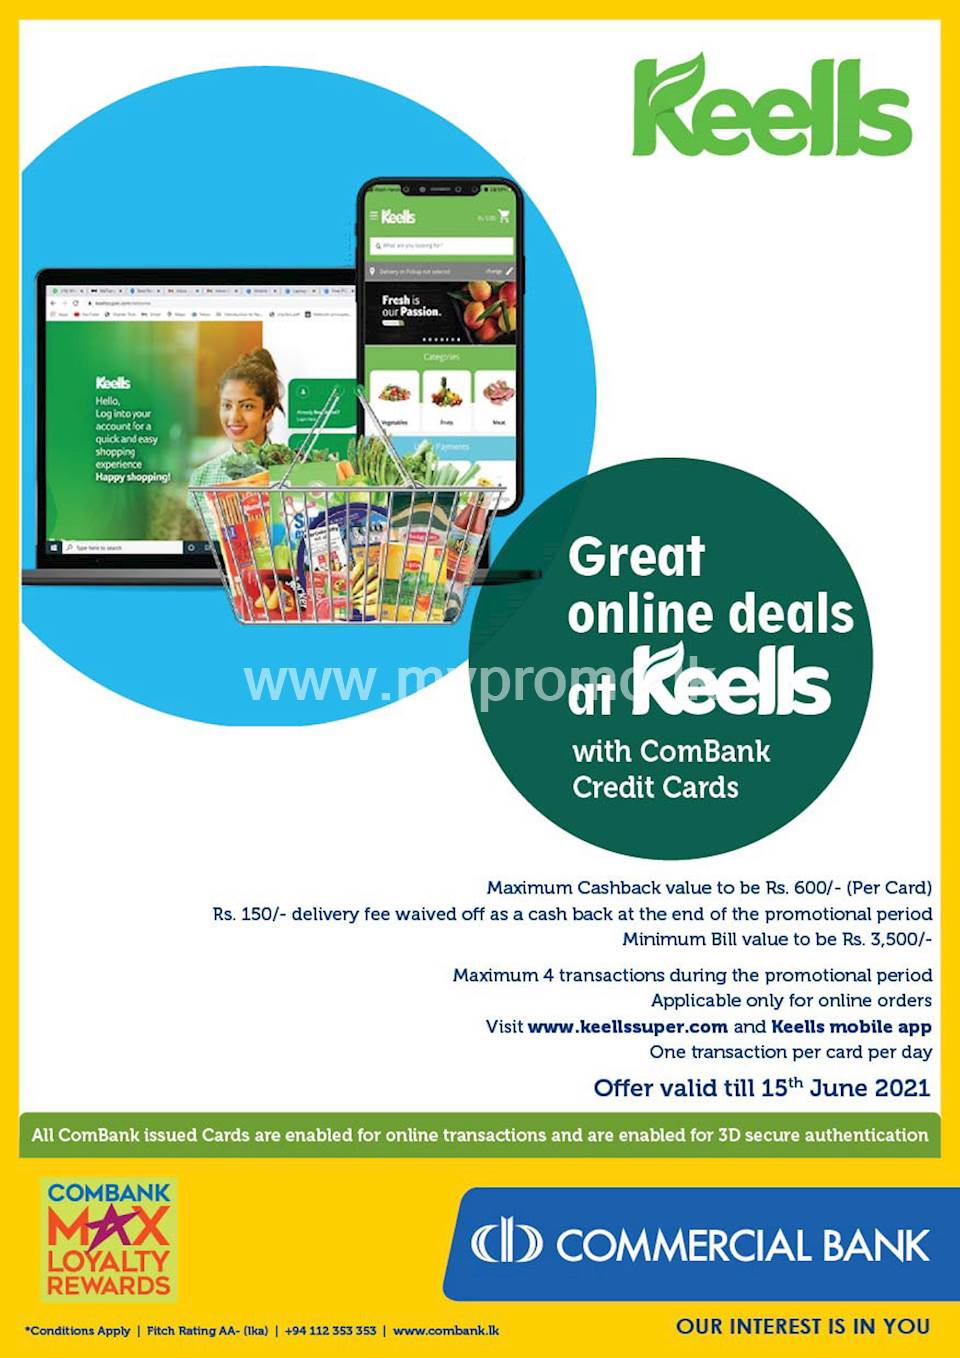 Great online deals at Keells with ComBank Credit Cards